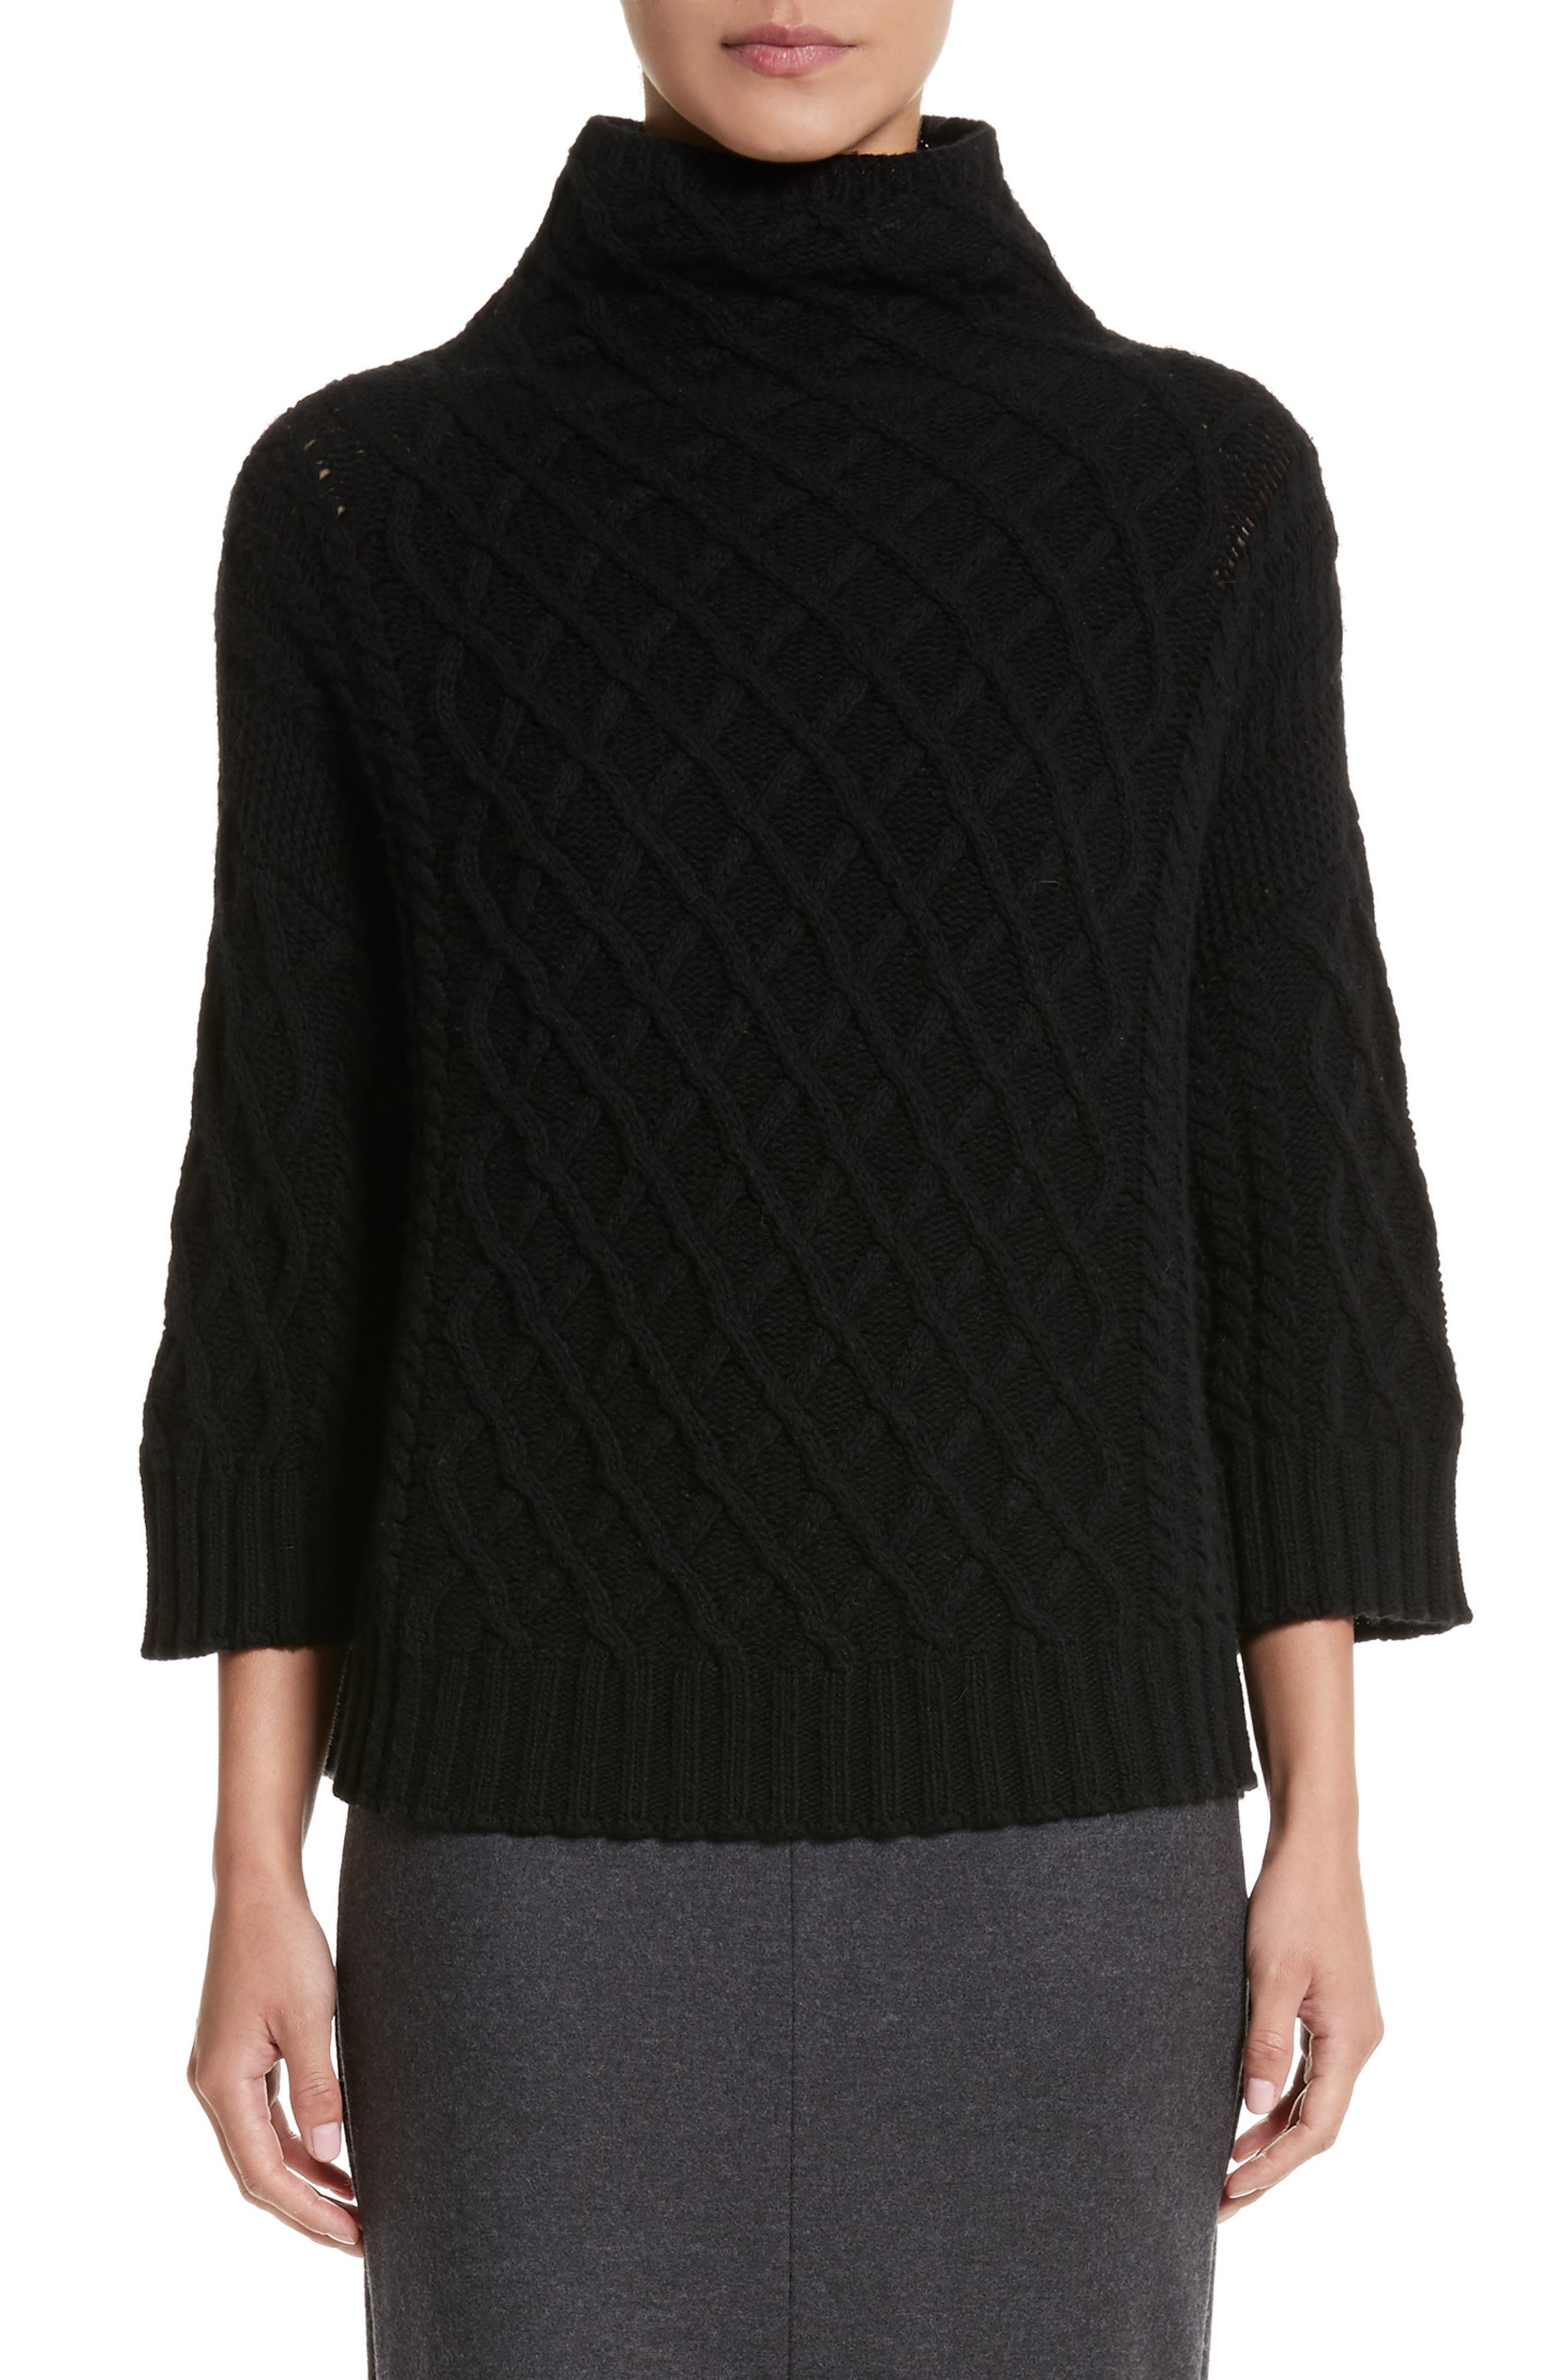 Alternate Image 1 Selected - Max Mara Cantone Wool & Cashmere Funnel Neck Sweater